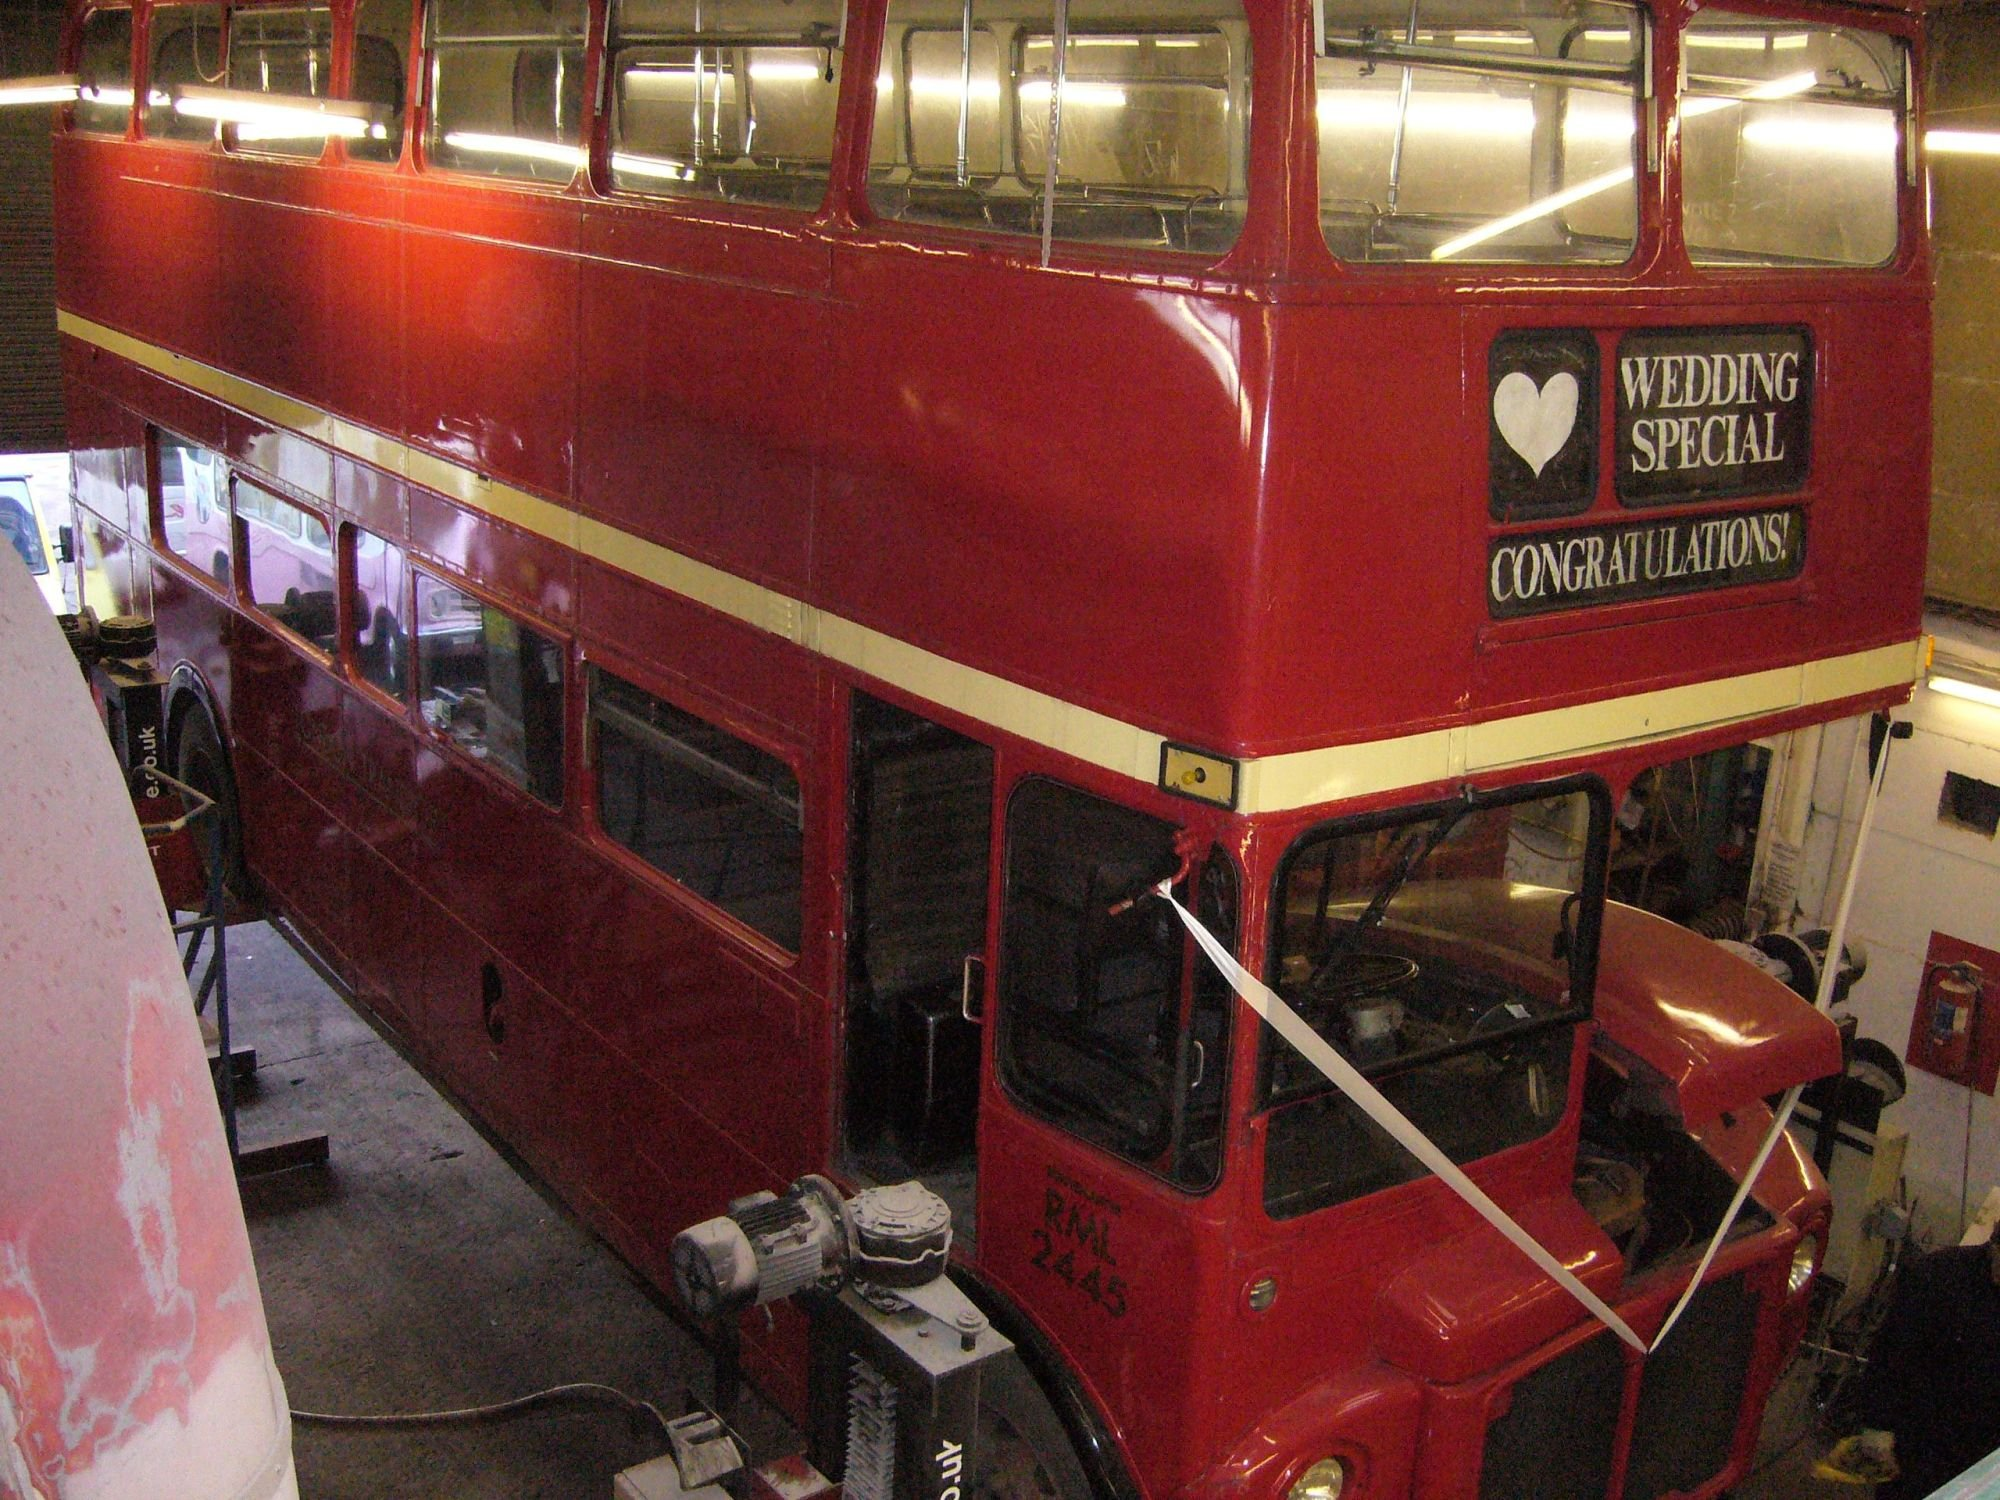 Finishing touches being put on restored Routemaster